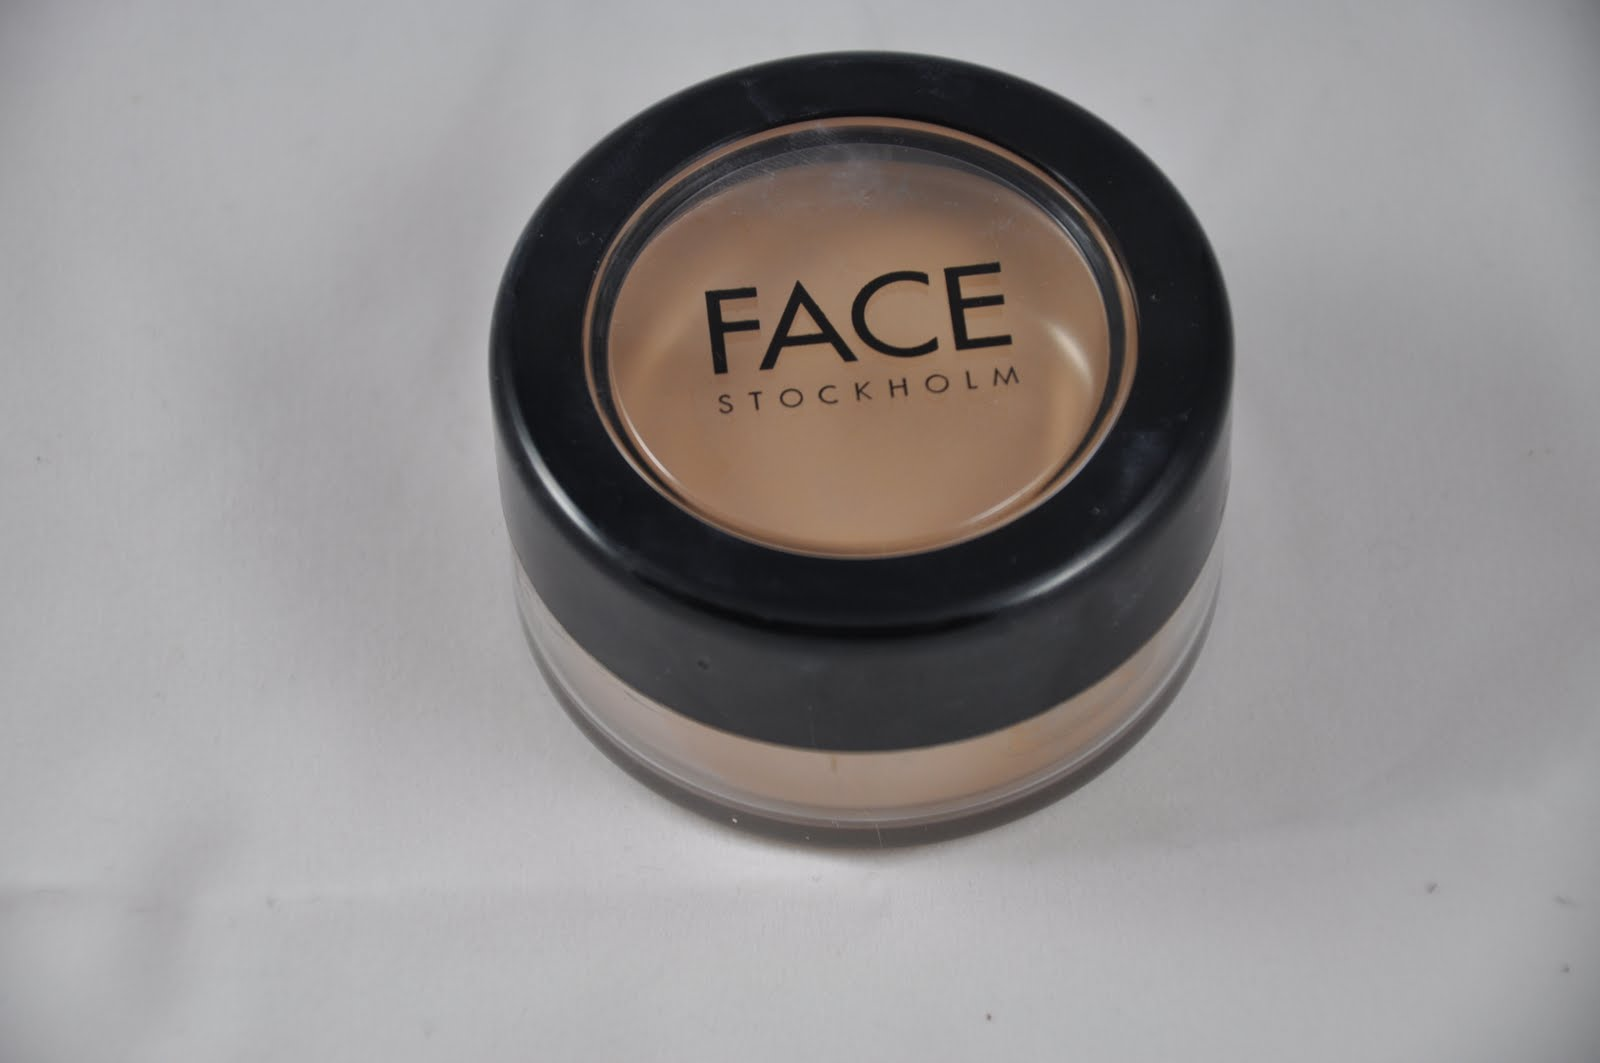 face stockholm picture perfect foundation